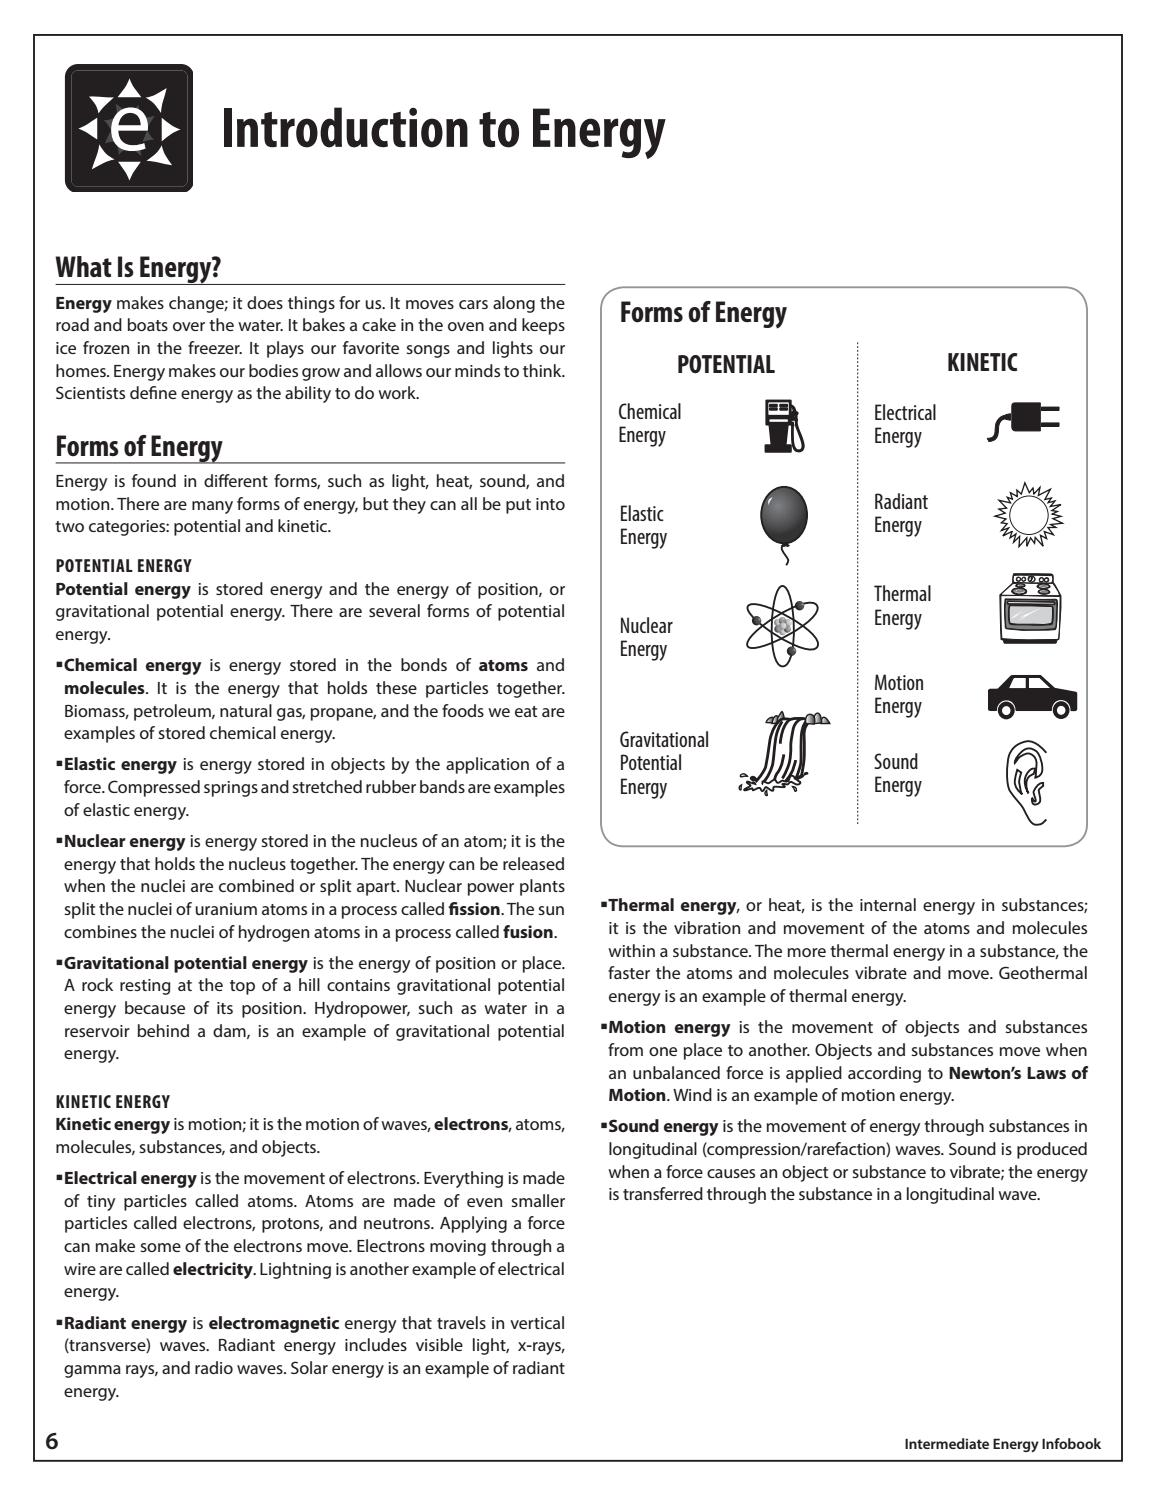 Intermediate Energy Infobook By Need Project Issuu